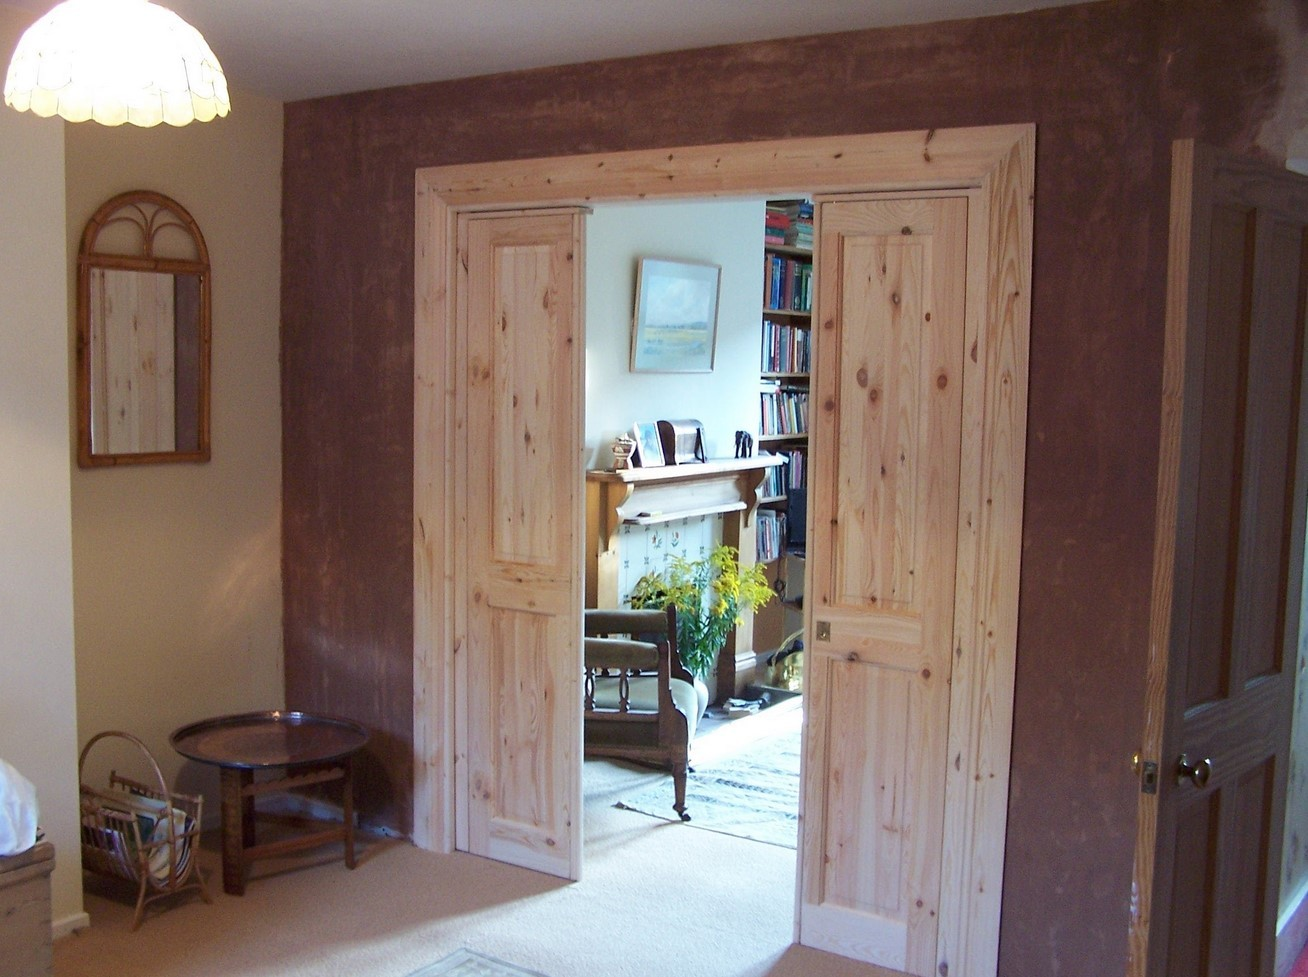 How To Build An Interior Wall With A Door